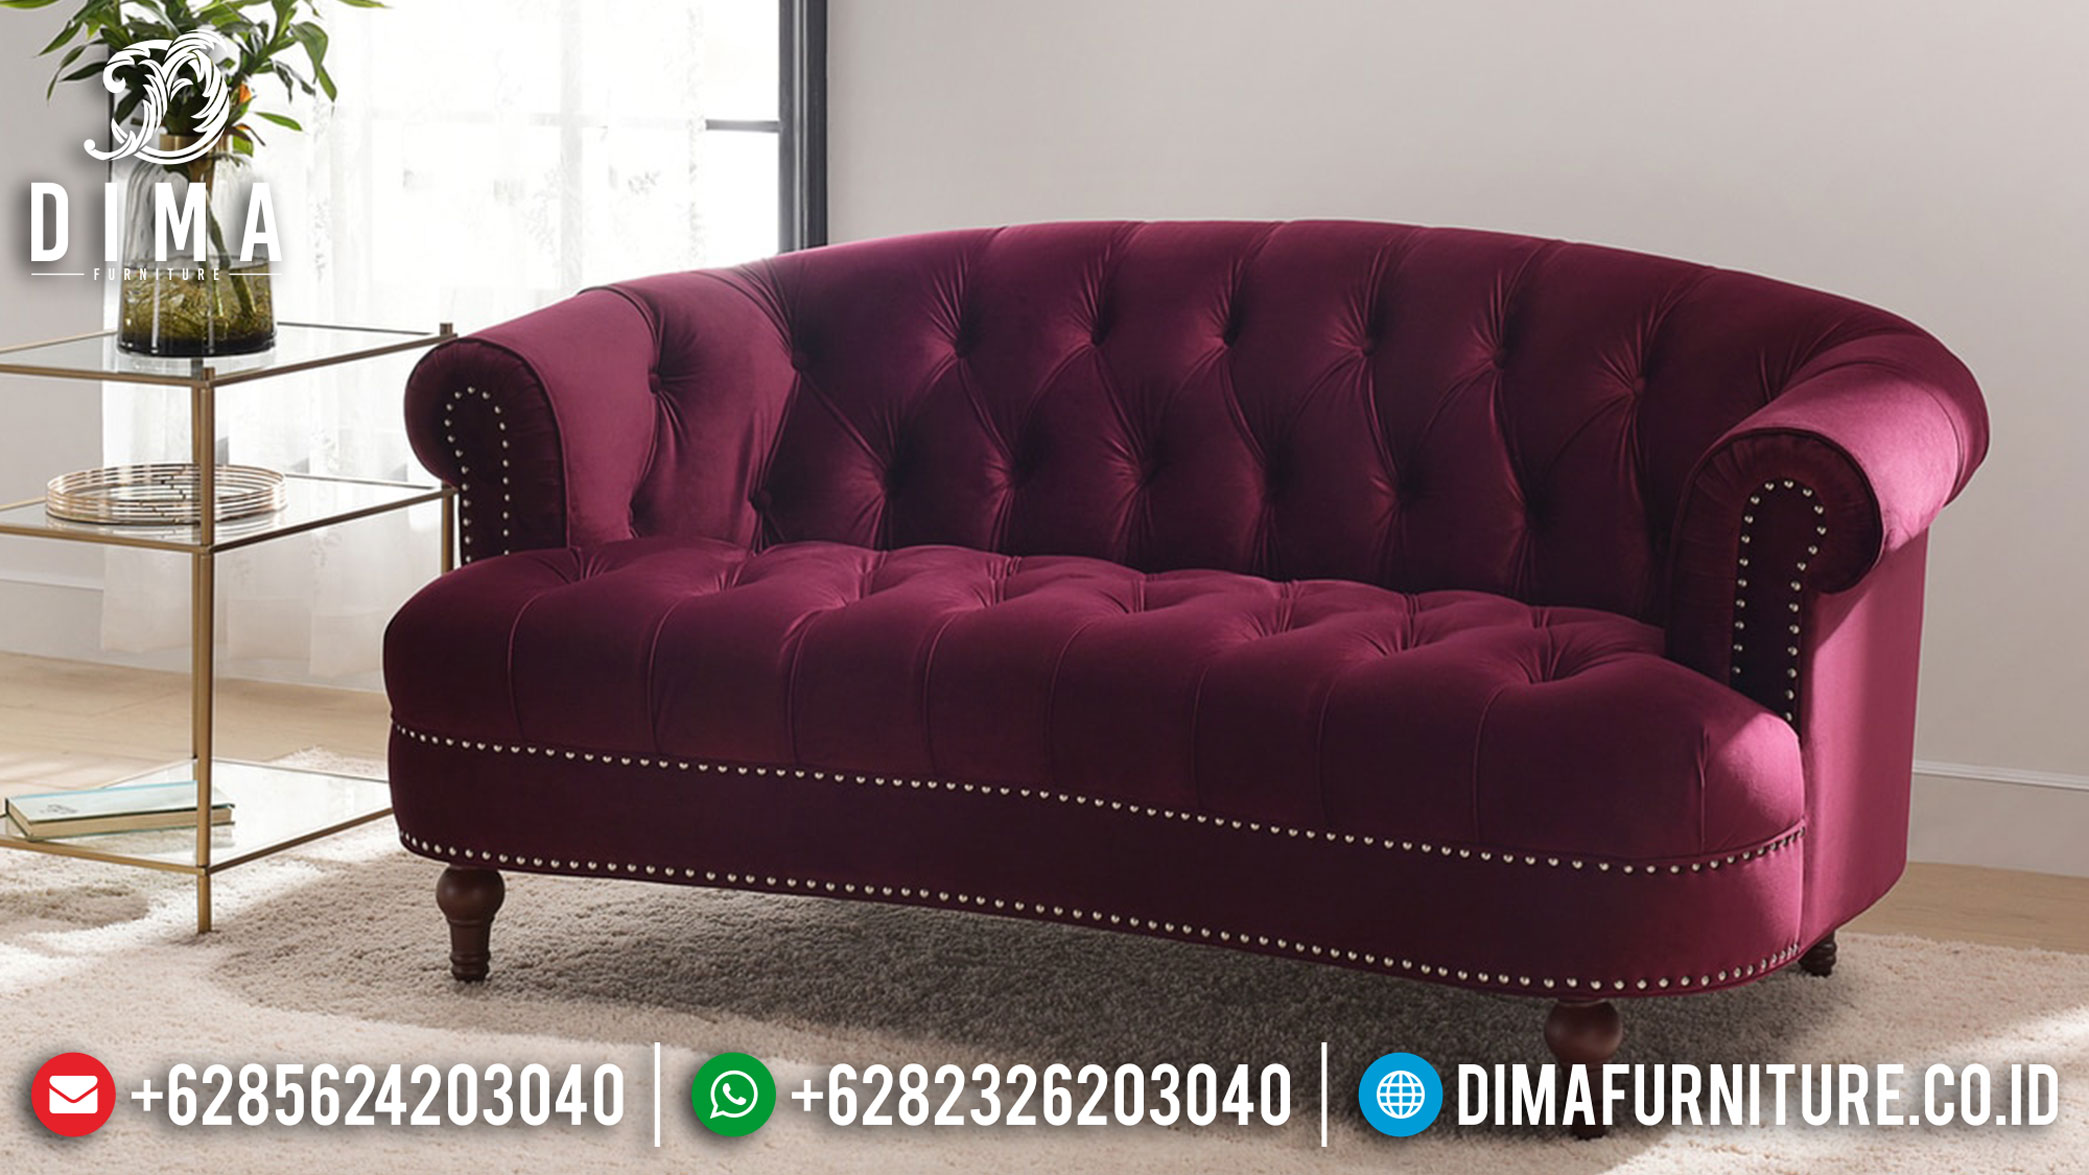 Sofa Tamu 3 Dudukan Model New Chesterfield Minimalis Modern Redheart TTJ-1224